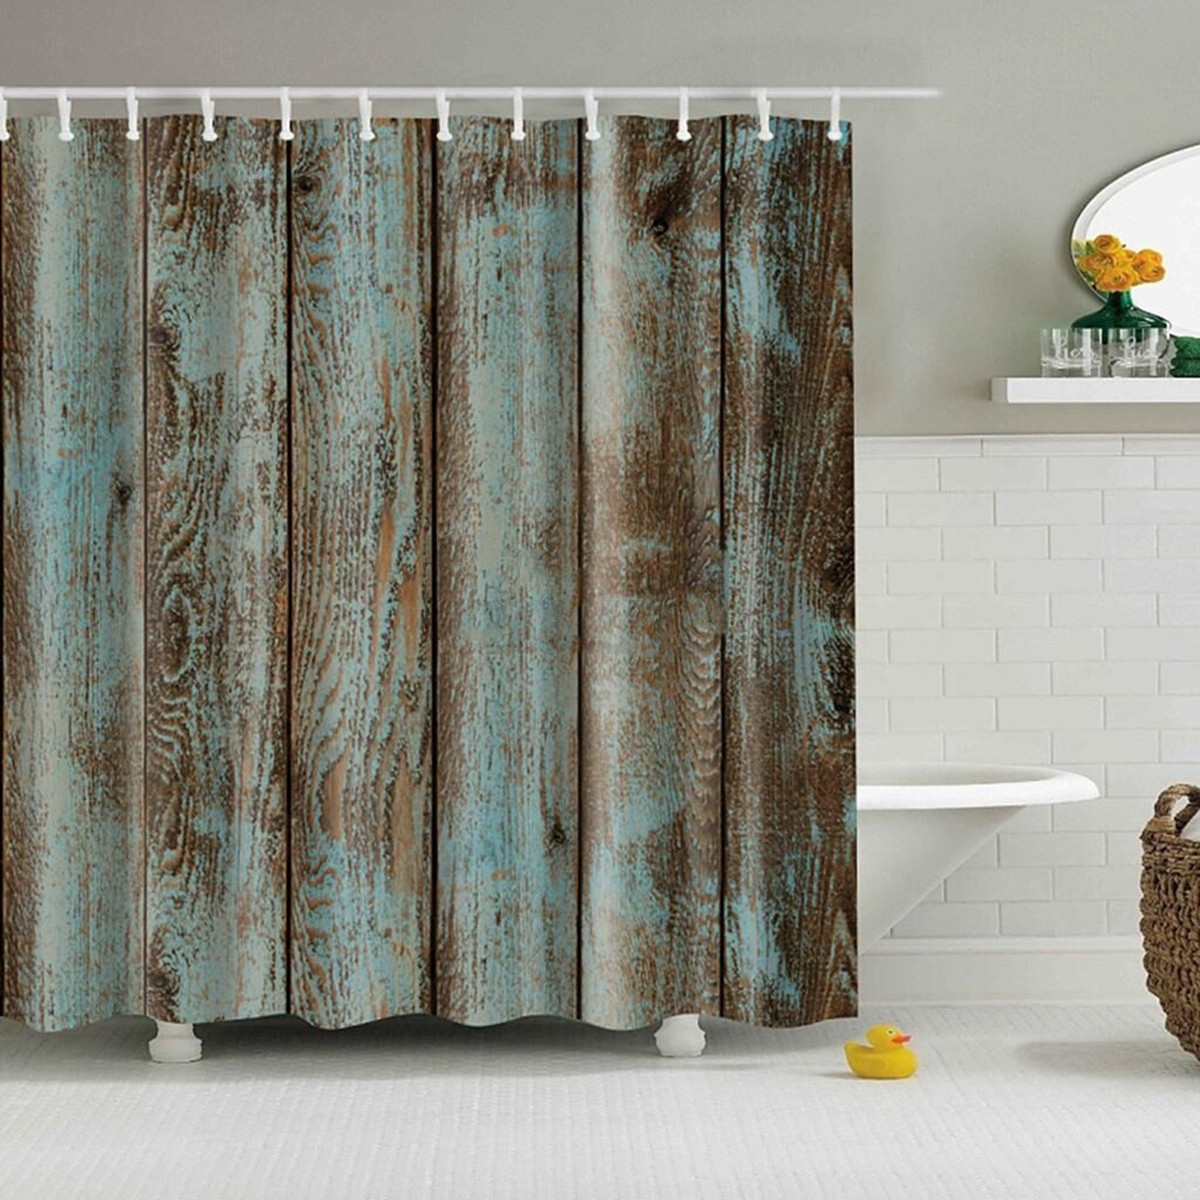 12 Hooks Shabby Wood Waterproof Polyester Fabric Shower Curtain ...